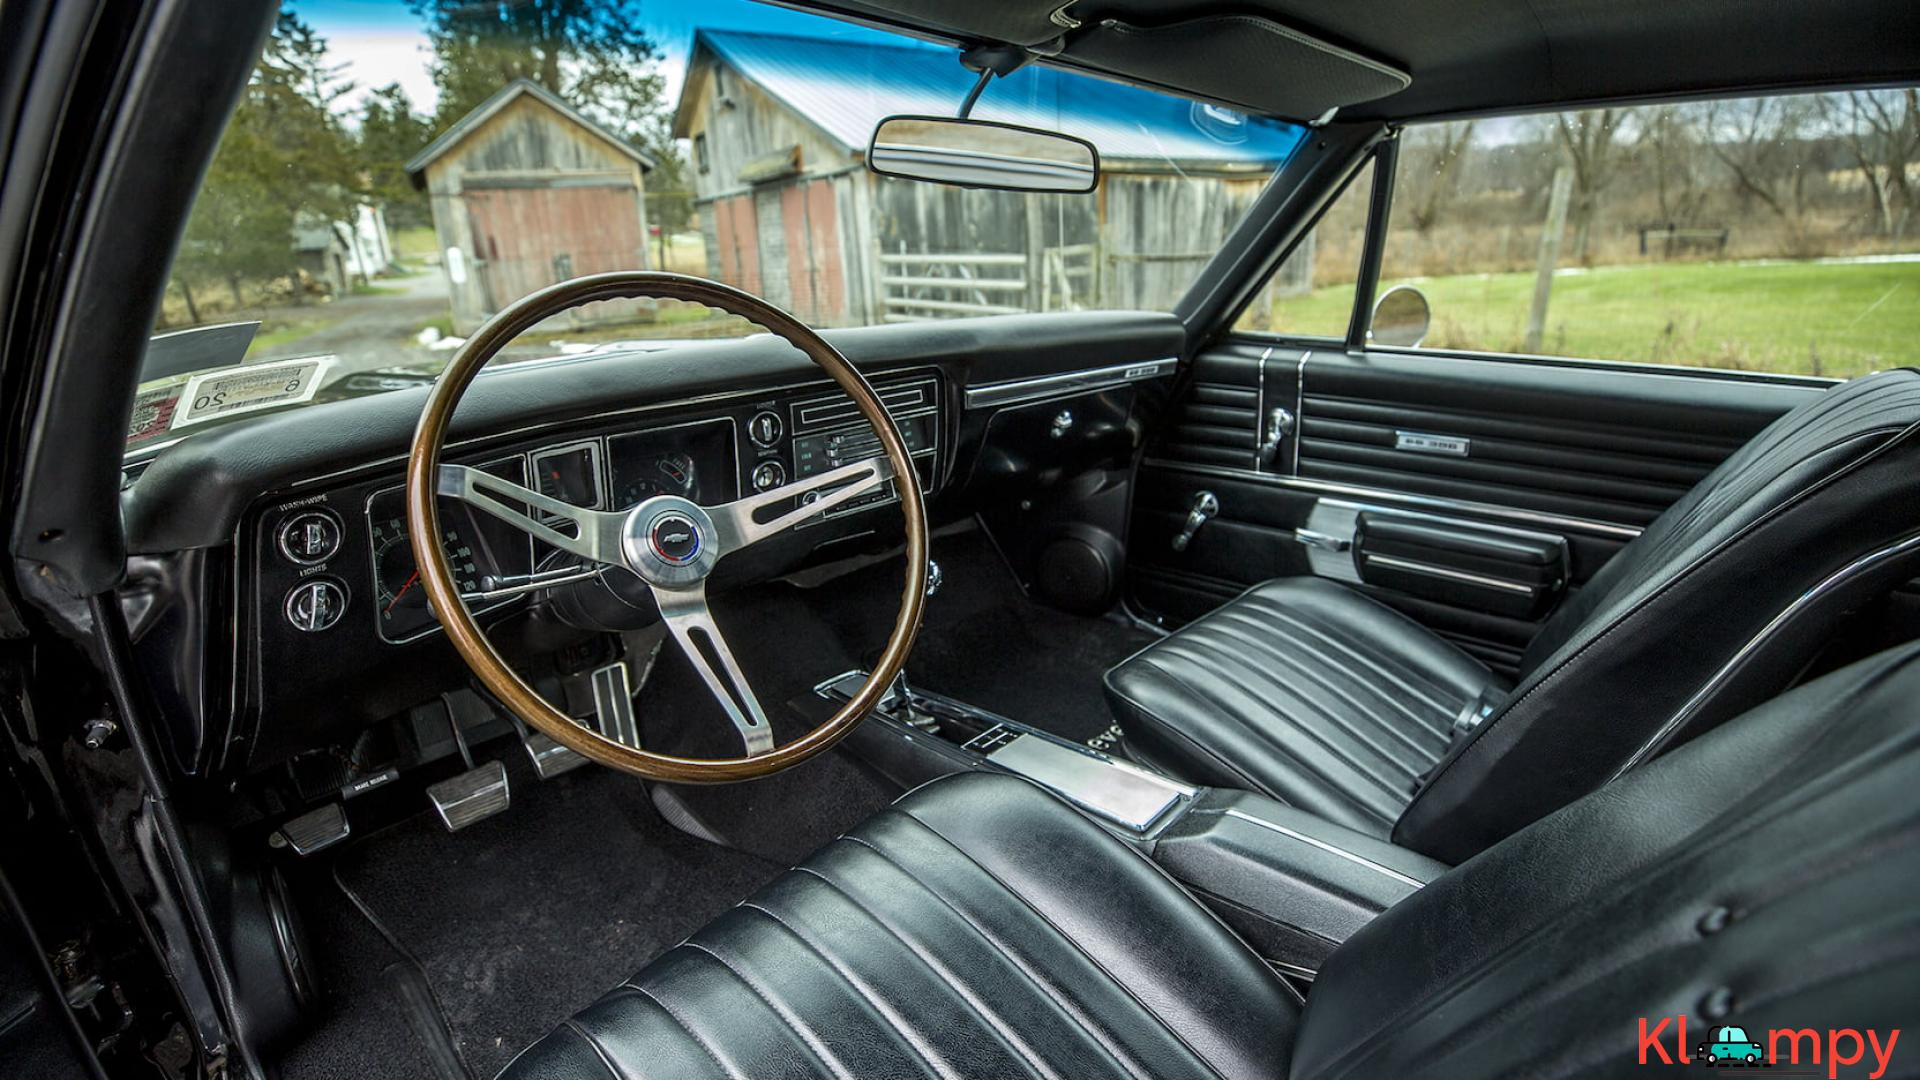 1968 Chevrolet Chevelle SS 396 Matching Numbers - 5/15